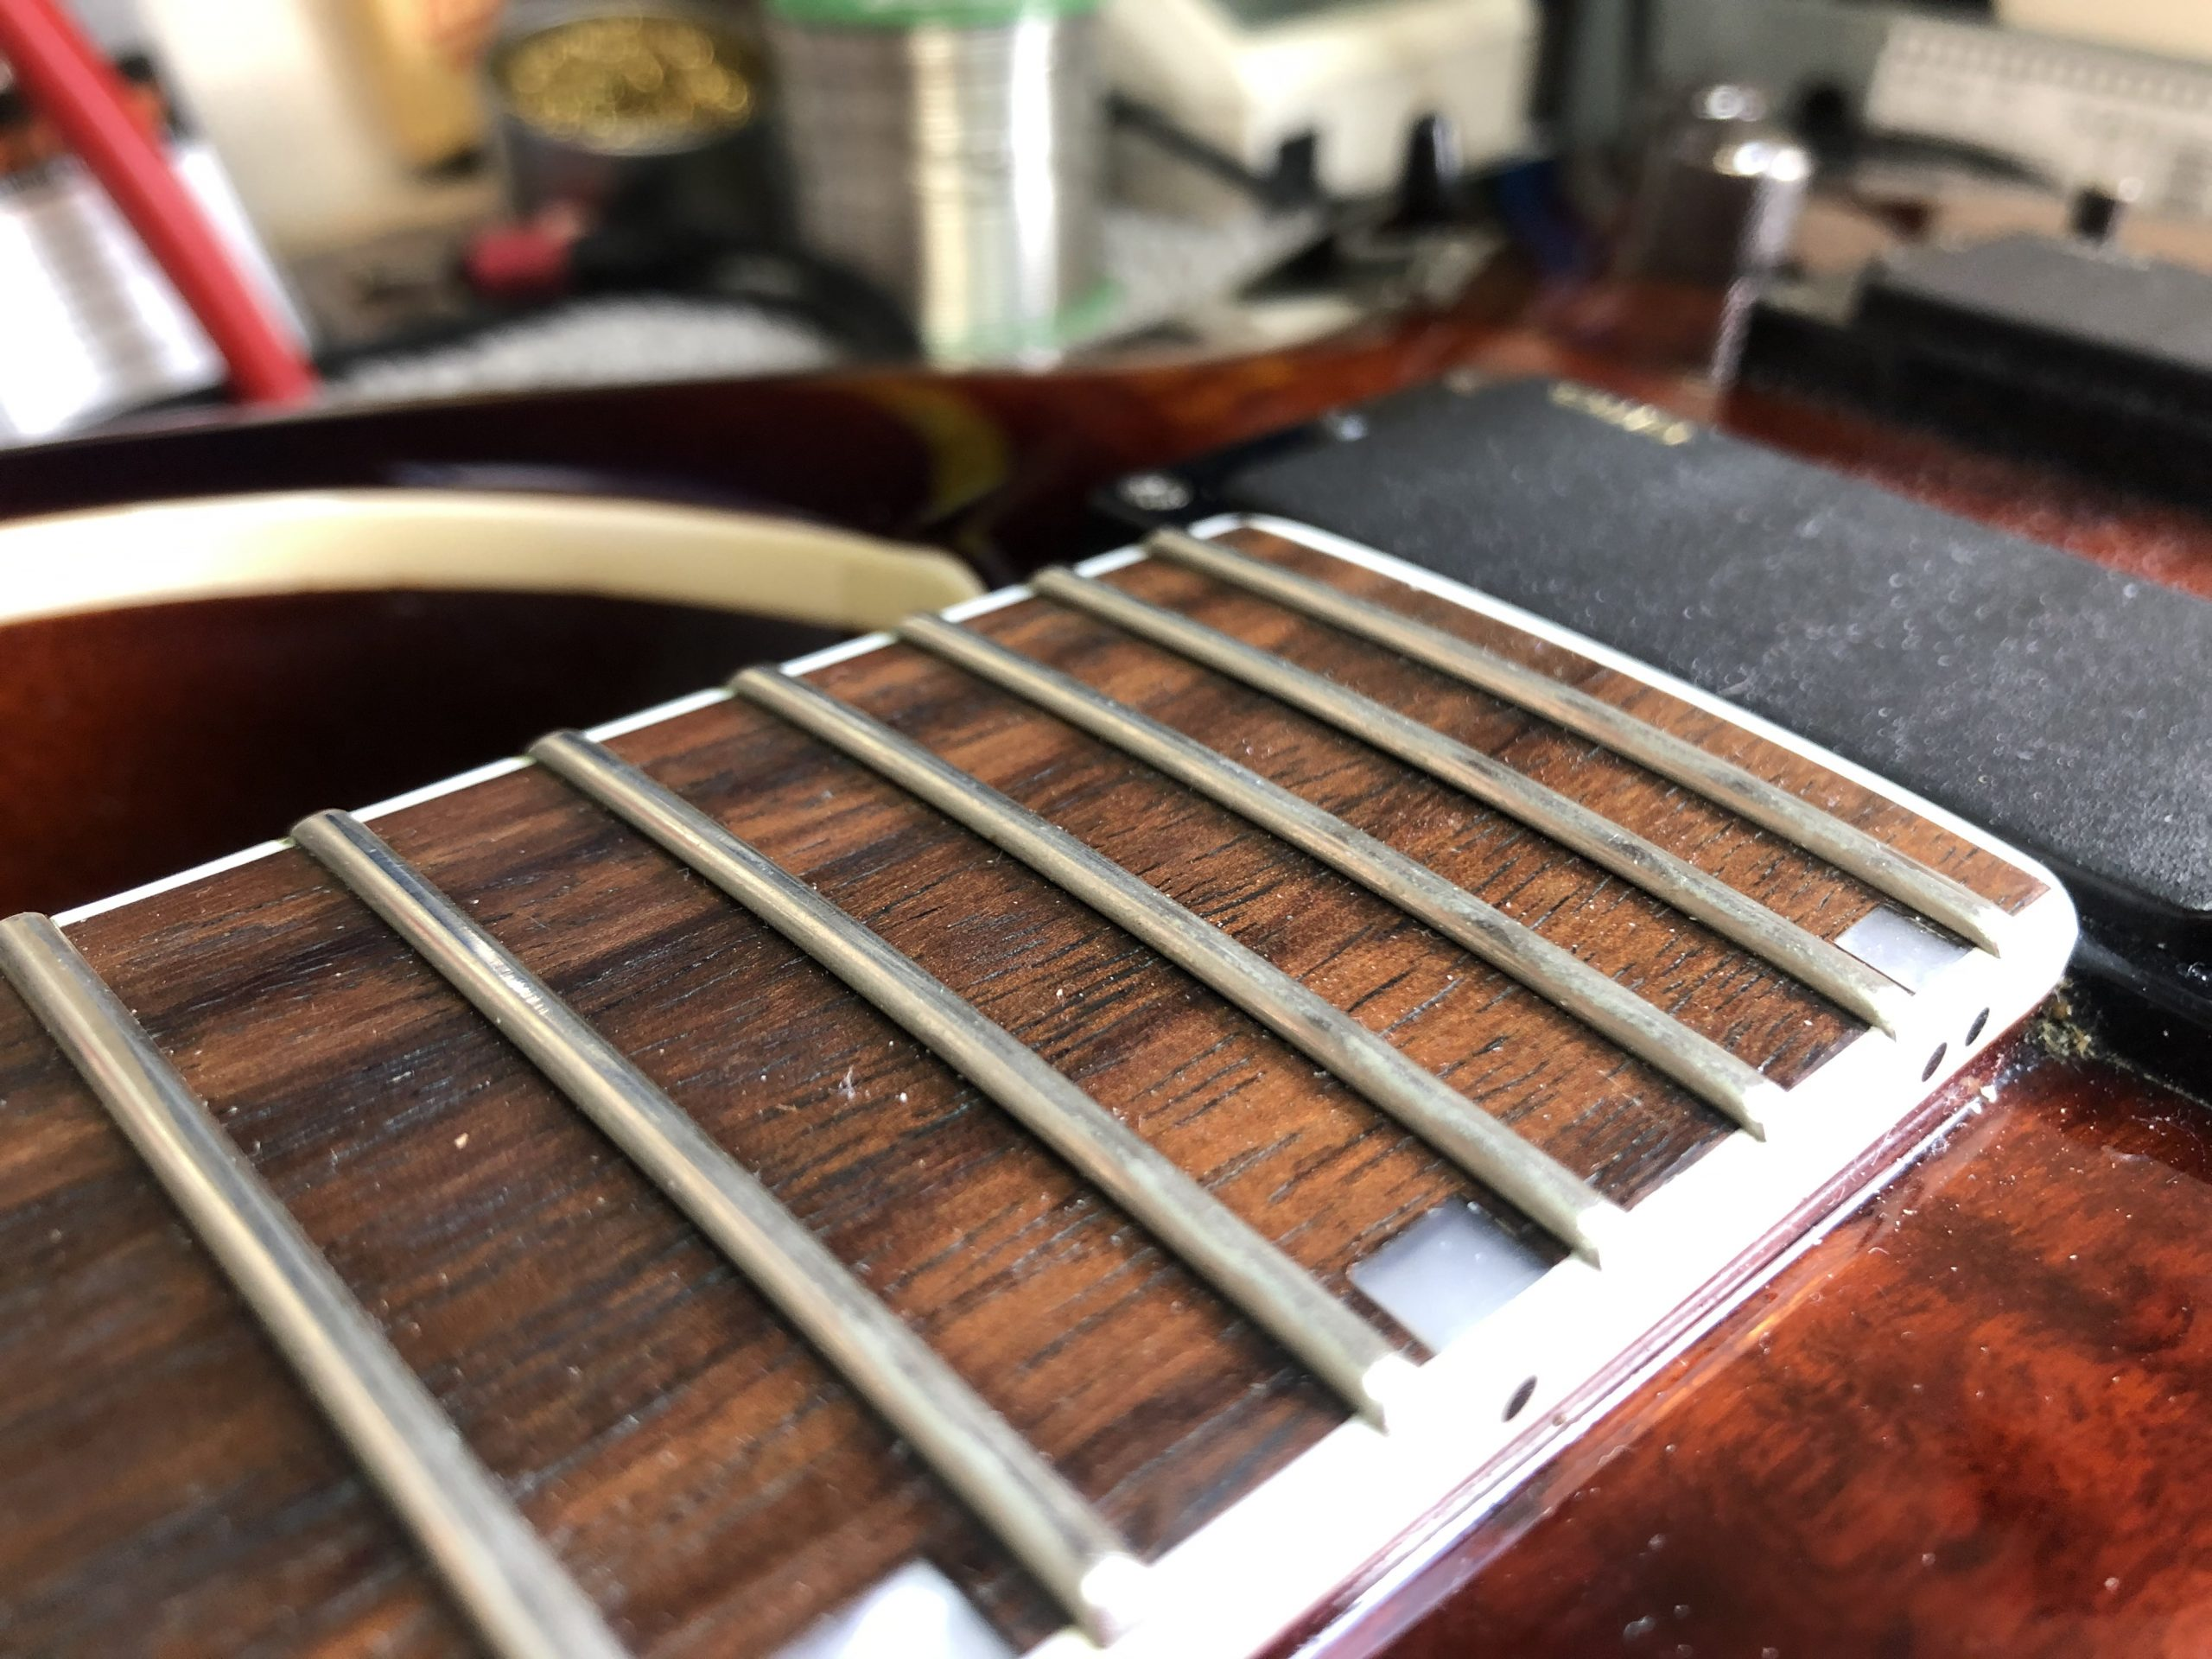 Some of the frets are high